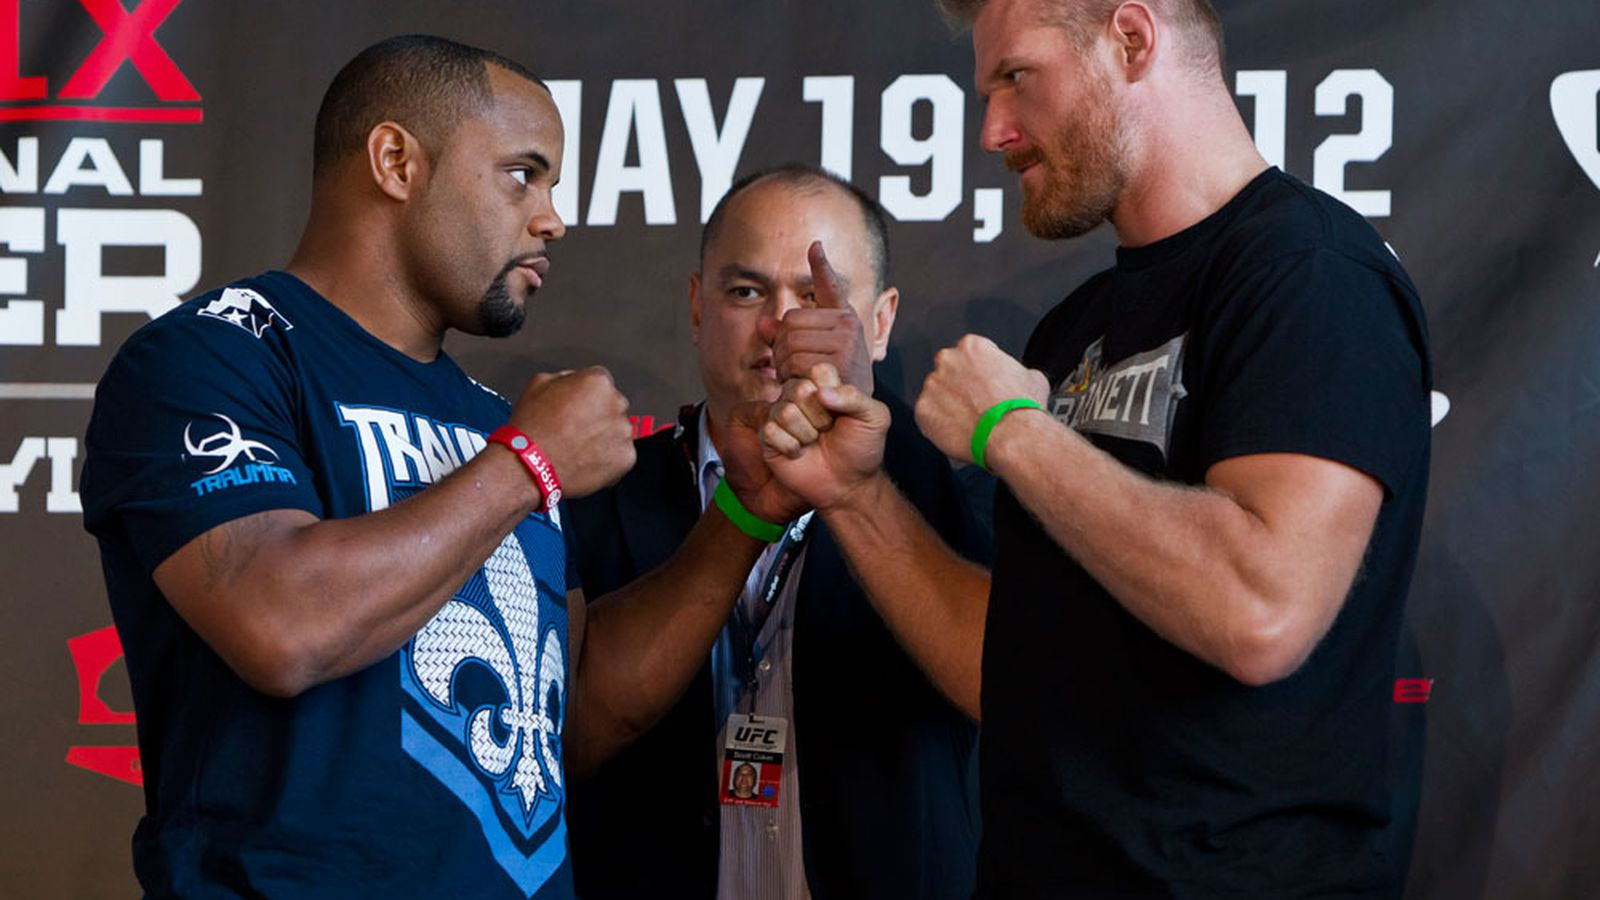 'Barnett vs Cormier' fight card: Josh Barnett vs Daniel ...